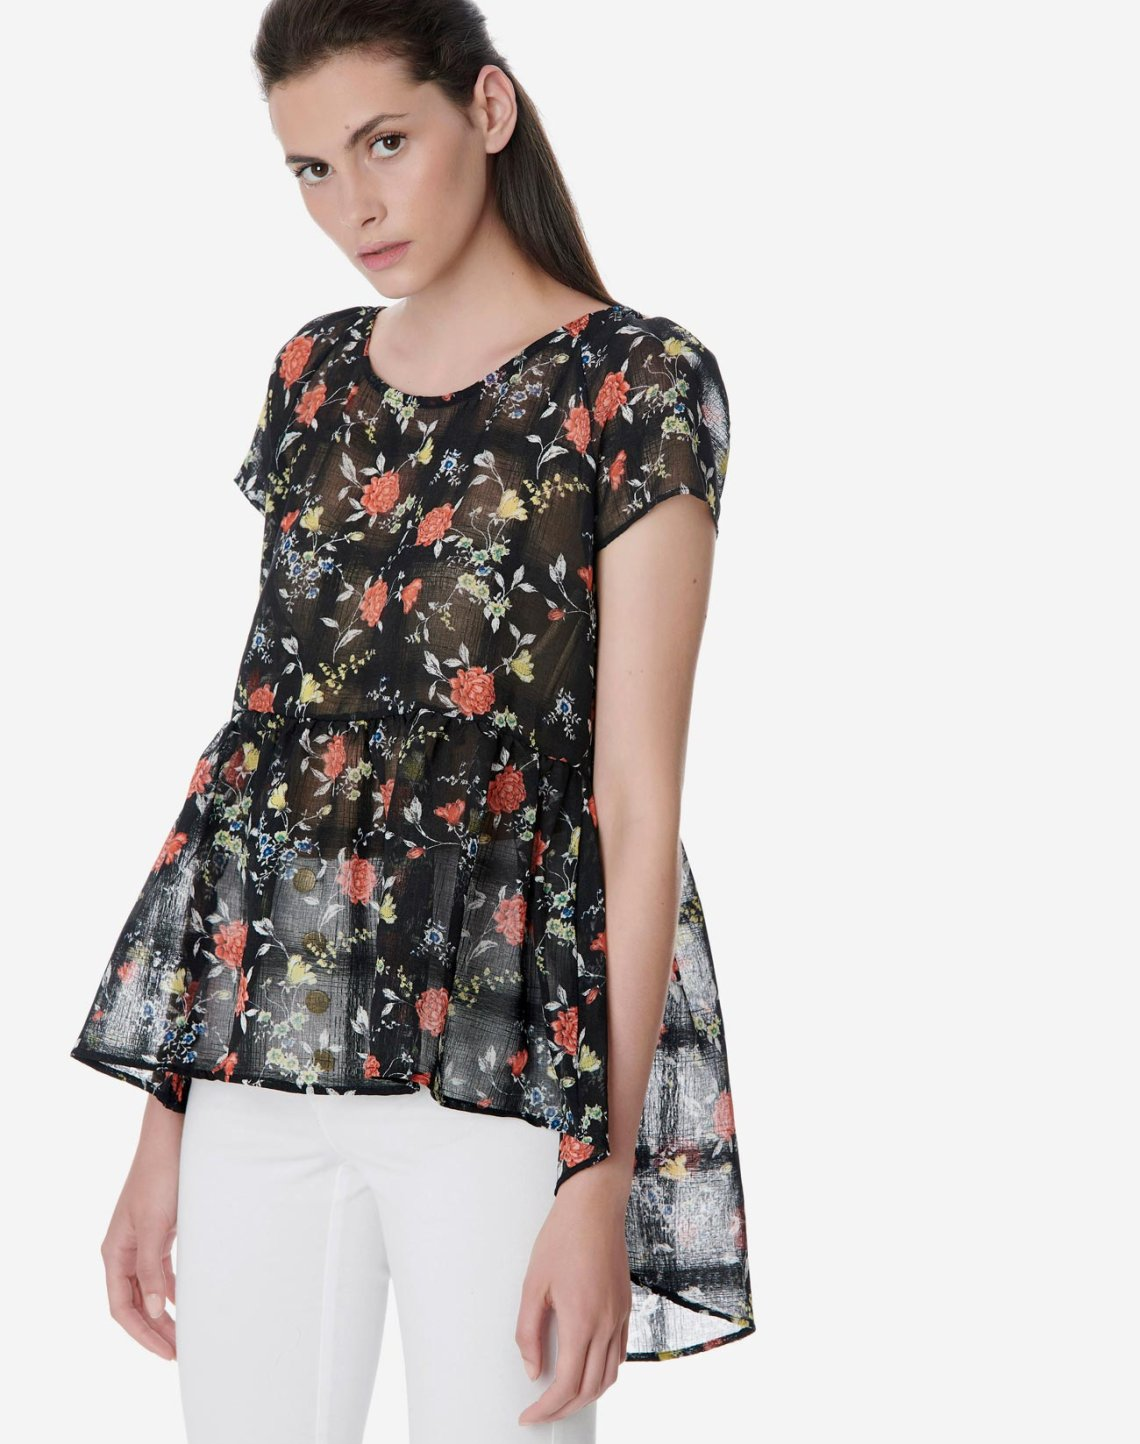 Semi sheer floral top